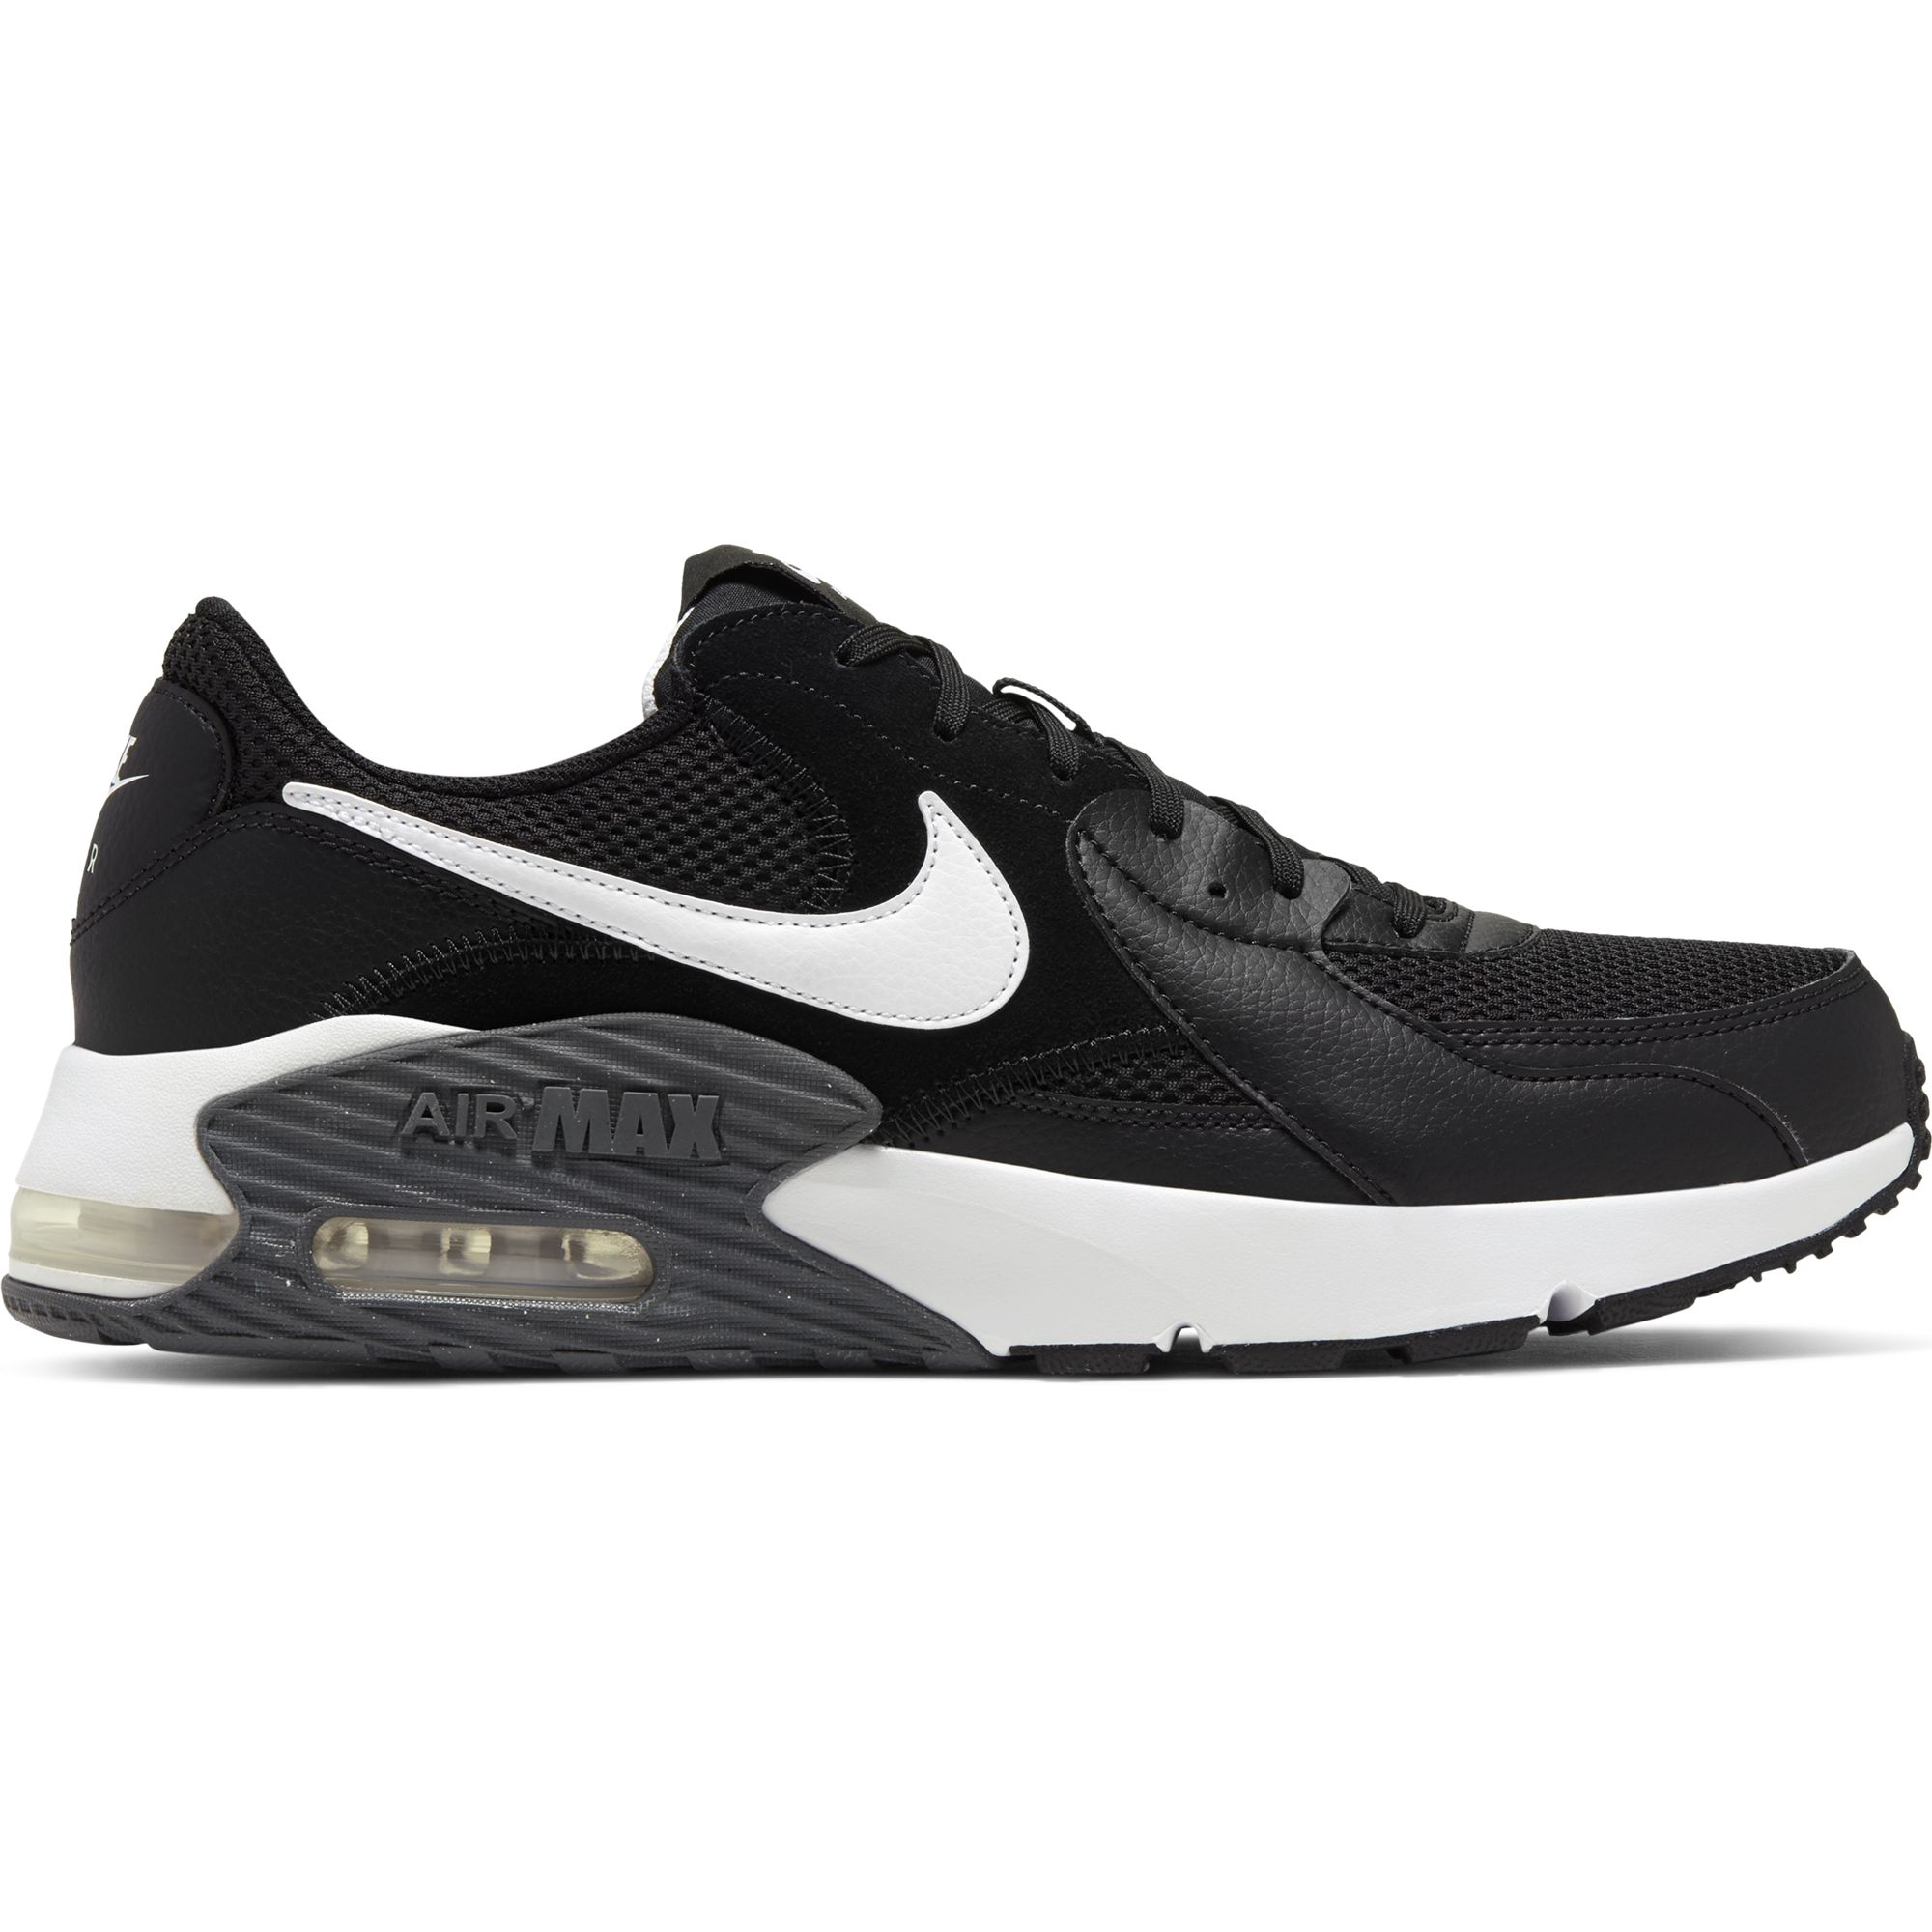 Mem's Air Max Excee Shoes, , large